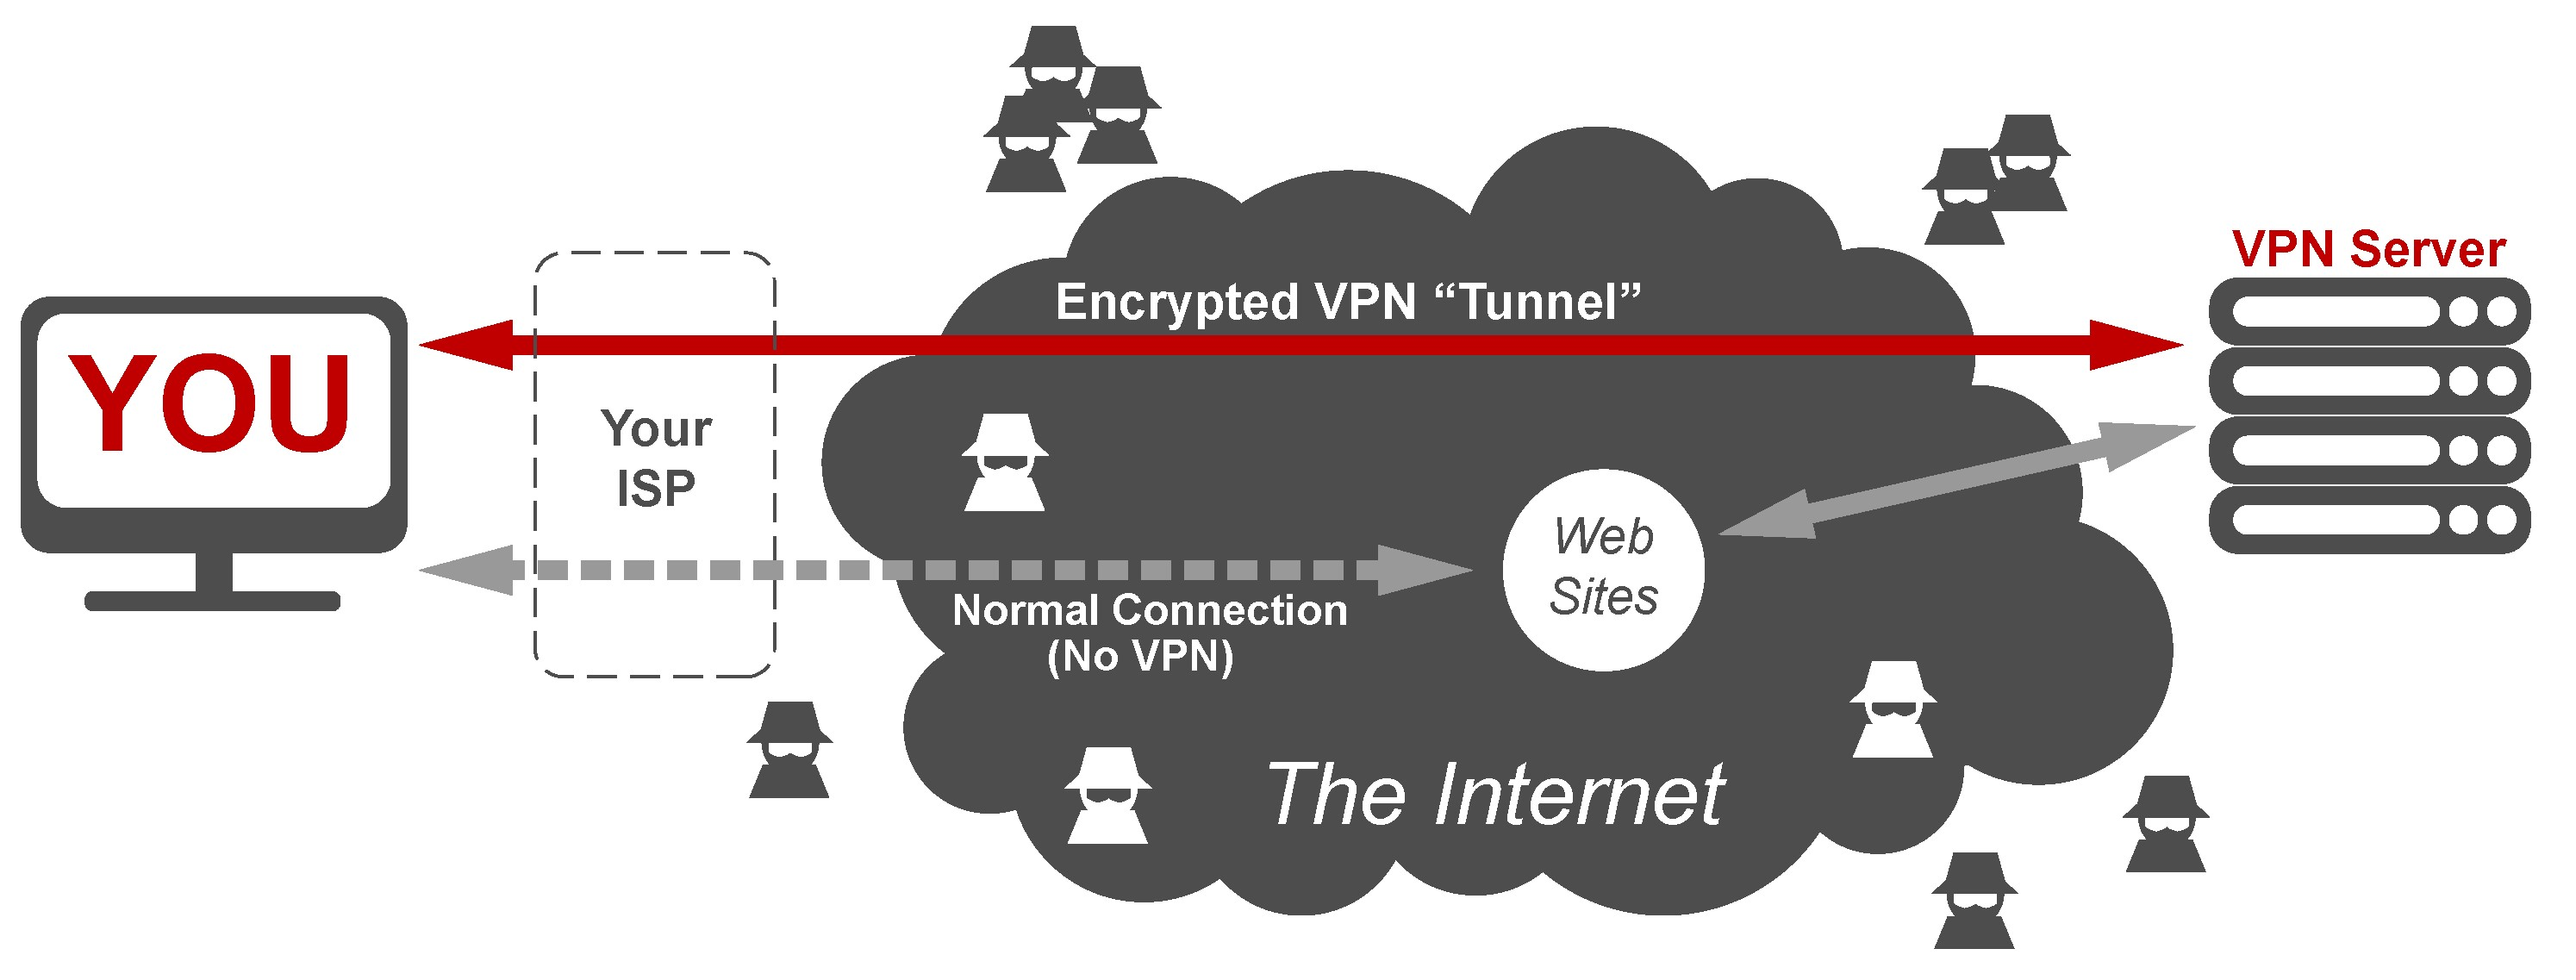 4 Things to Look In Your New VPN Service, Crucial Points To know!